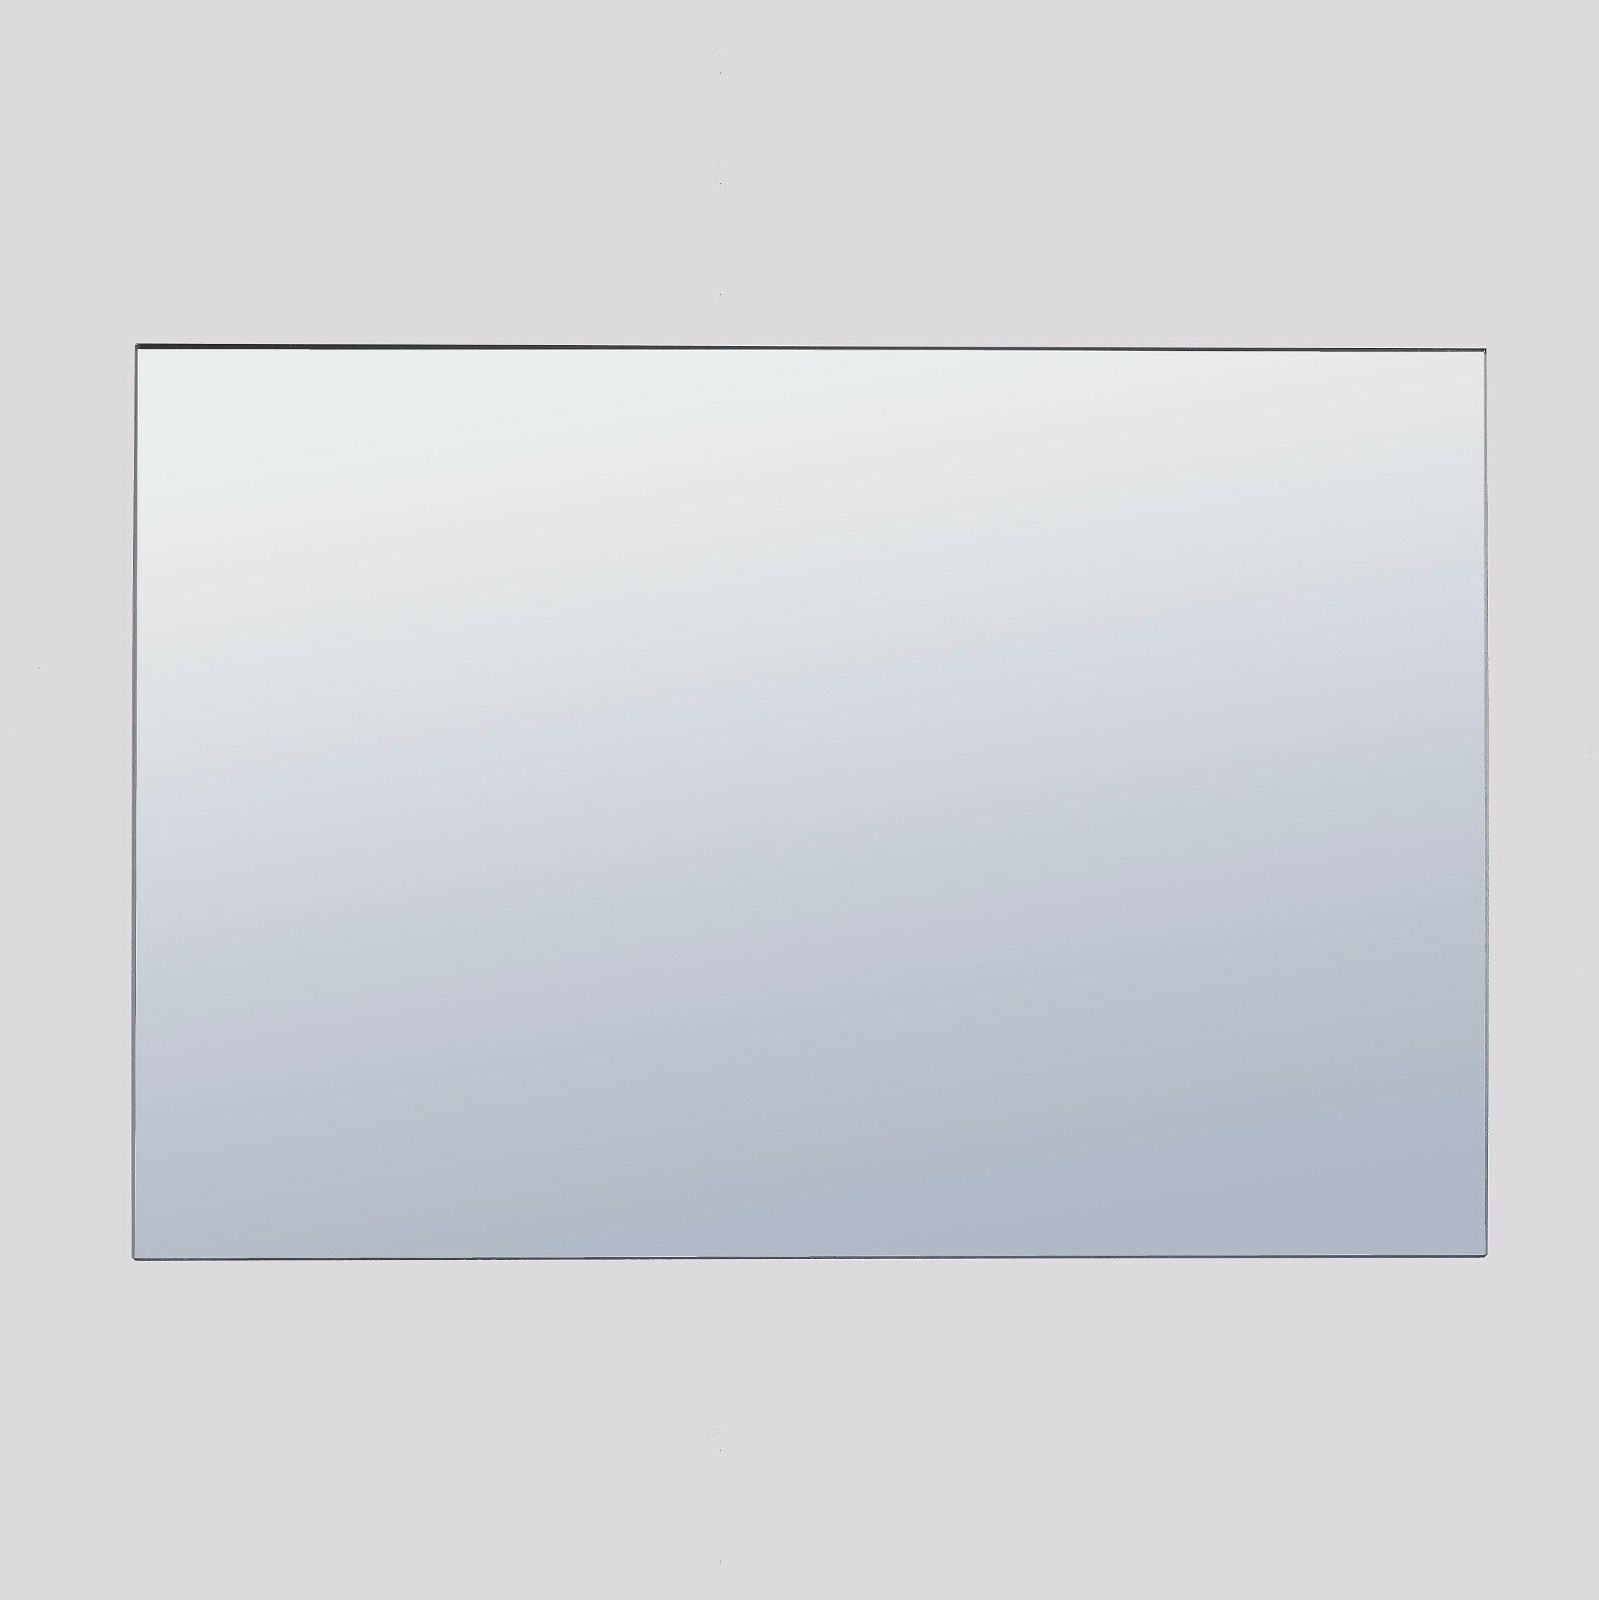 Details About A3 A4 A5 A6 Acrylic Plastic Mirror Shatter Proof Perspex  Sheet Tile Wall Mounted In Well Known Shatterproof Wall Mirrors (Gallery 9 of 20)